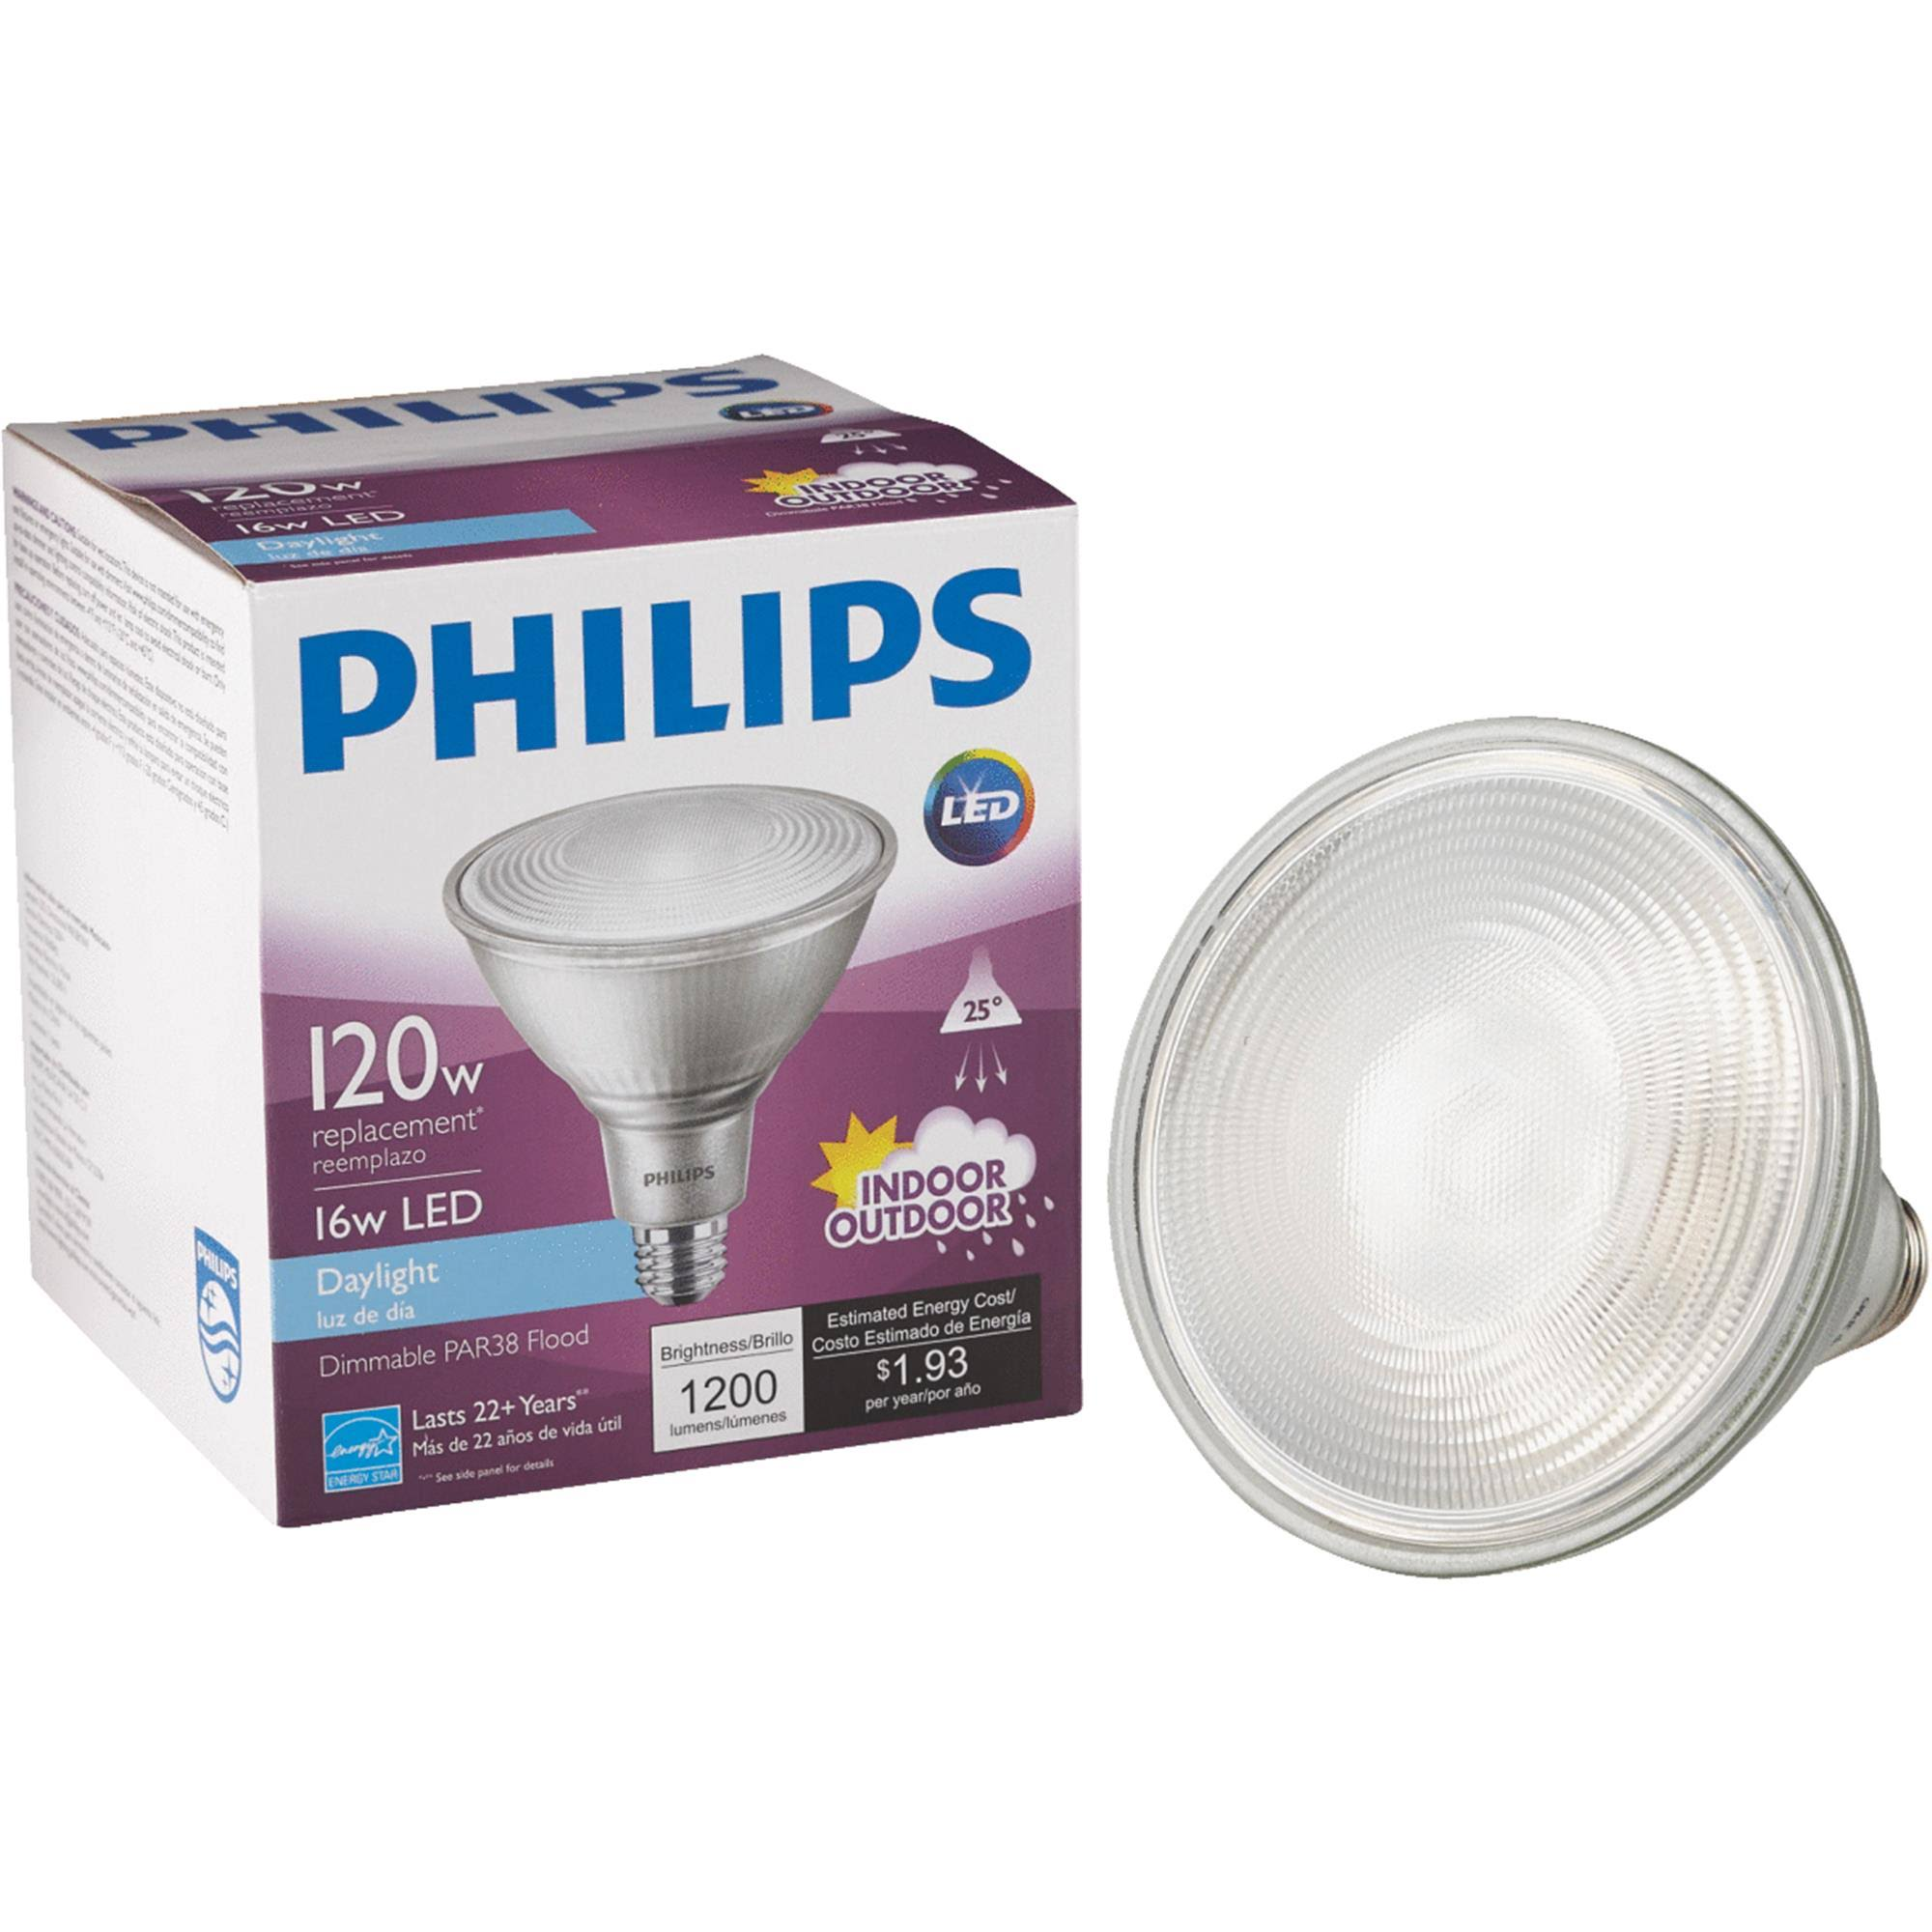 Philips PAR38 Medium Dimmable LED Floodlight Light Bulb - 120W